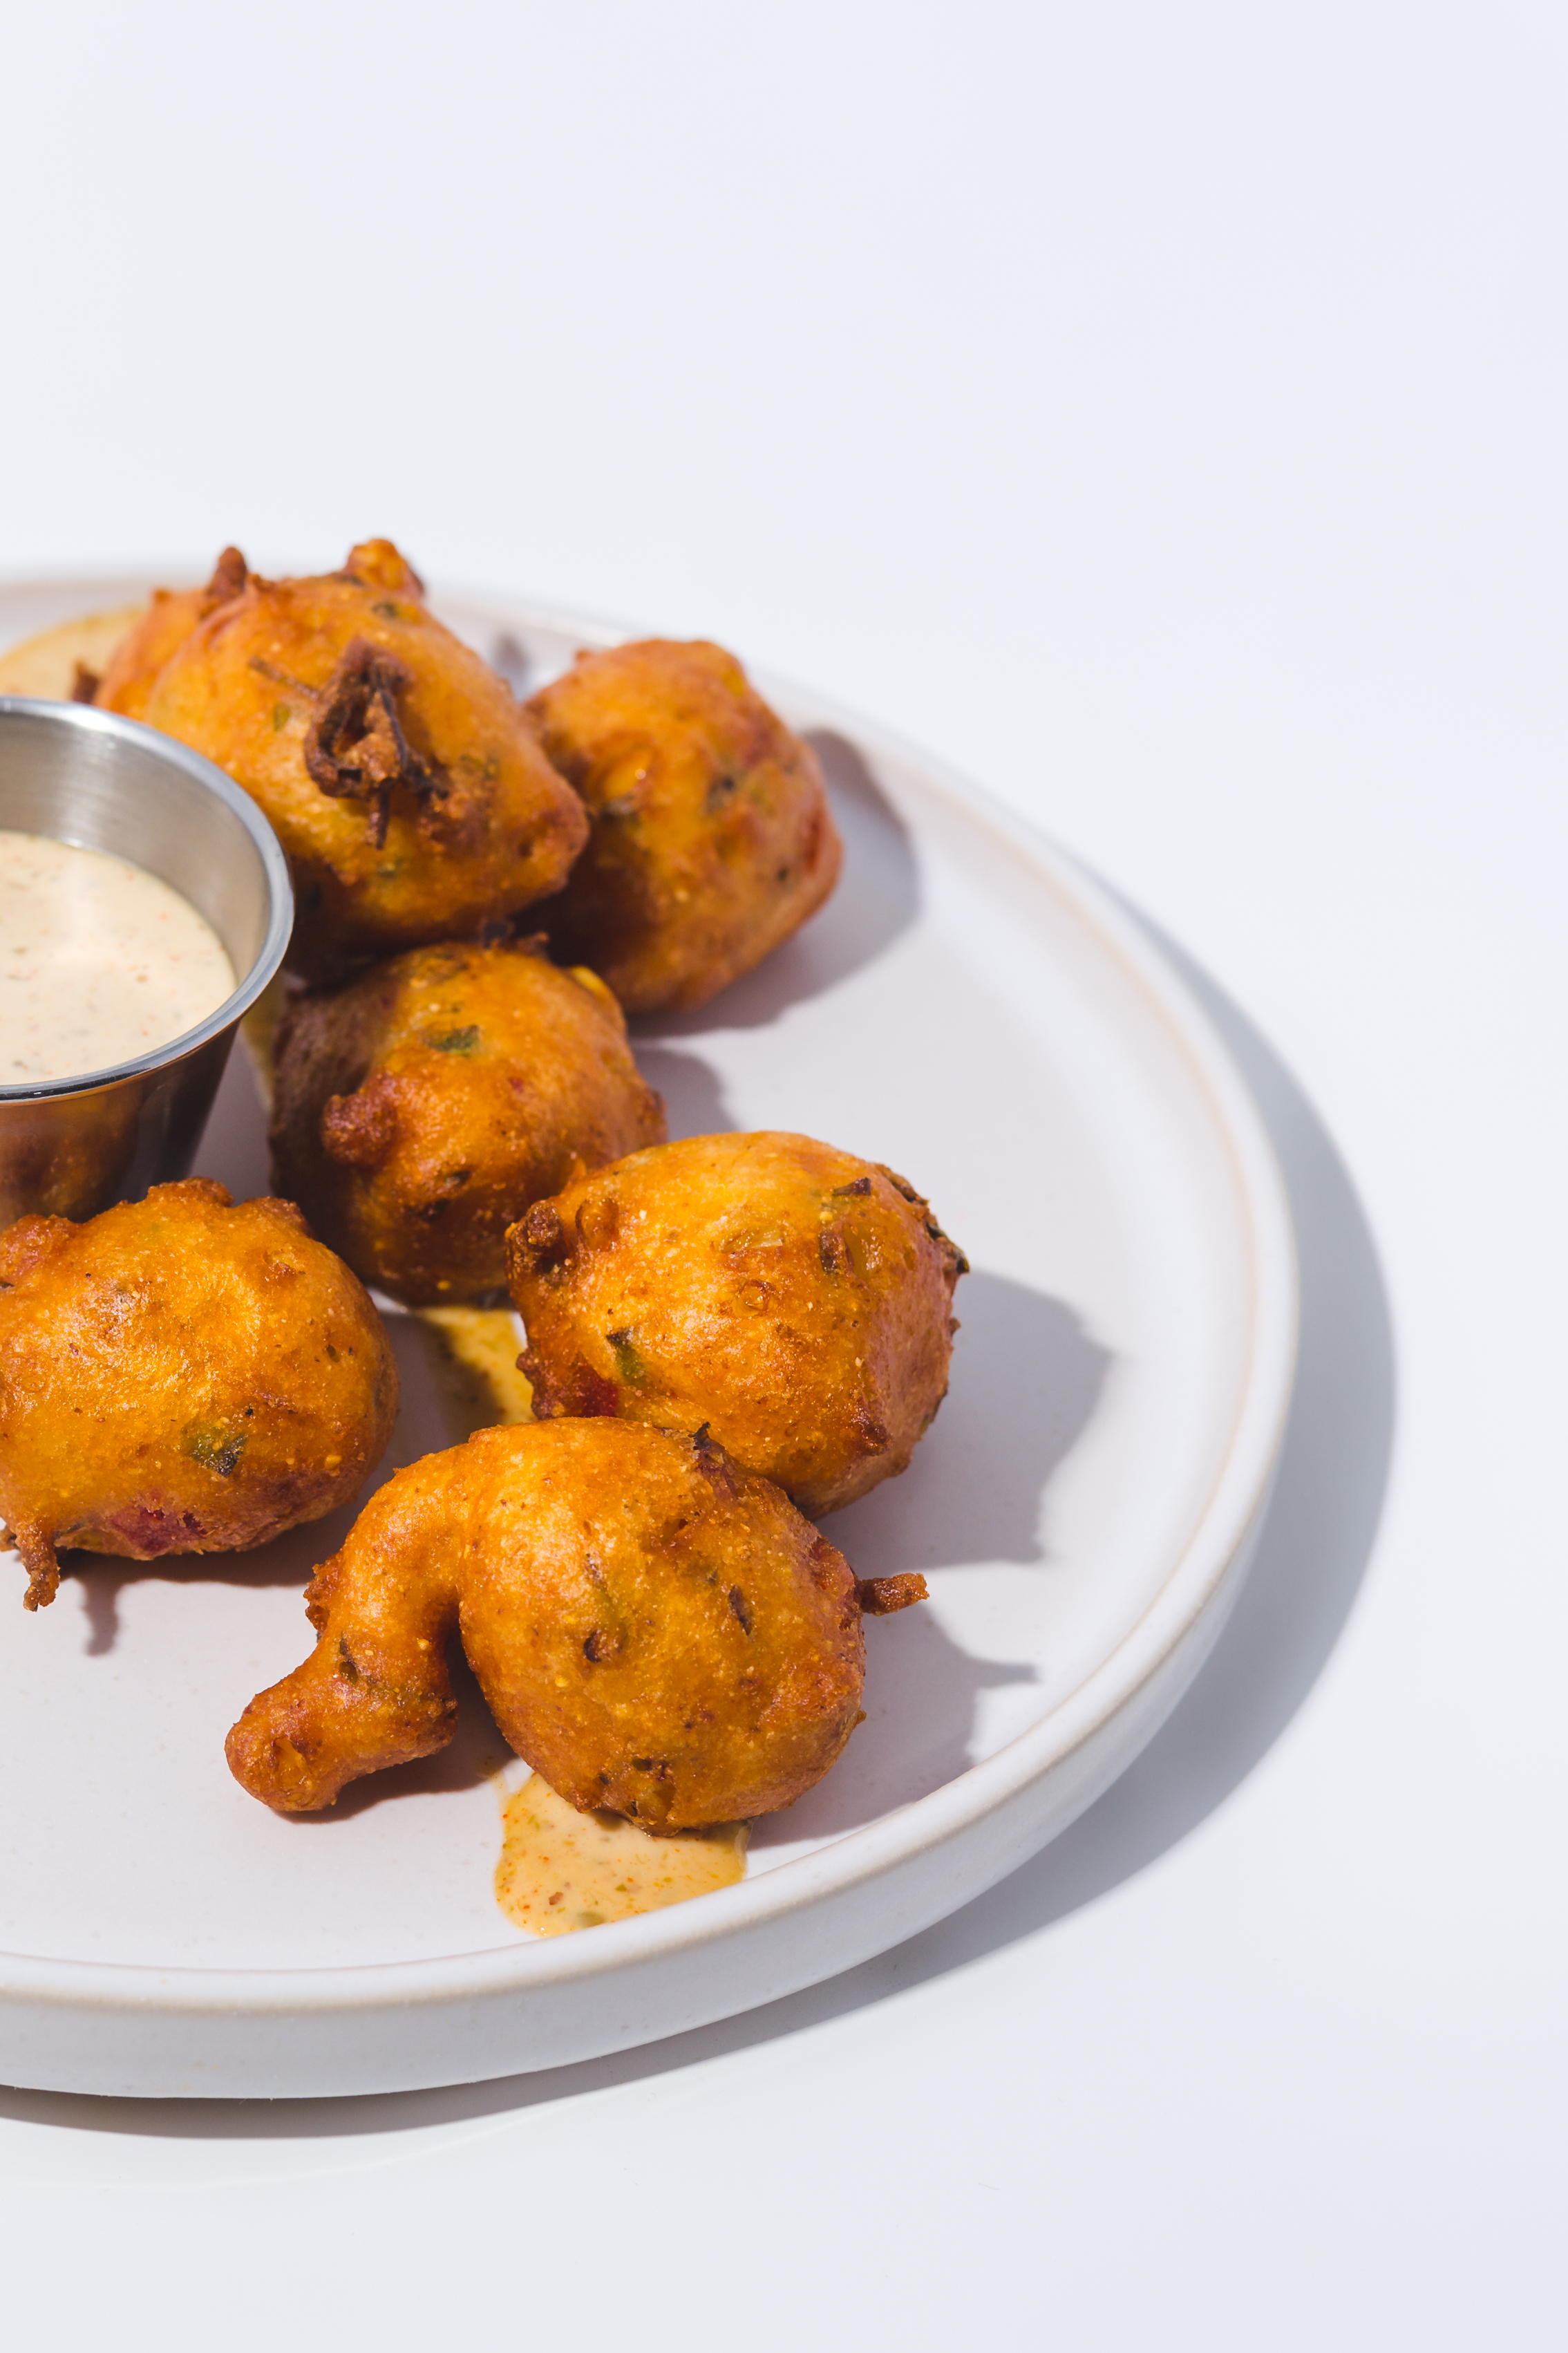 hush puppies on plate